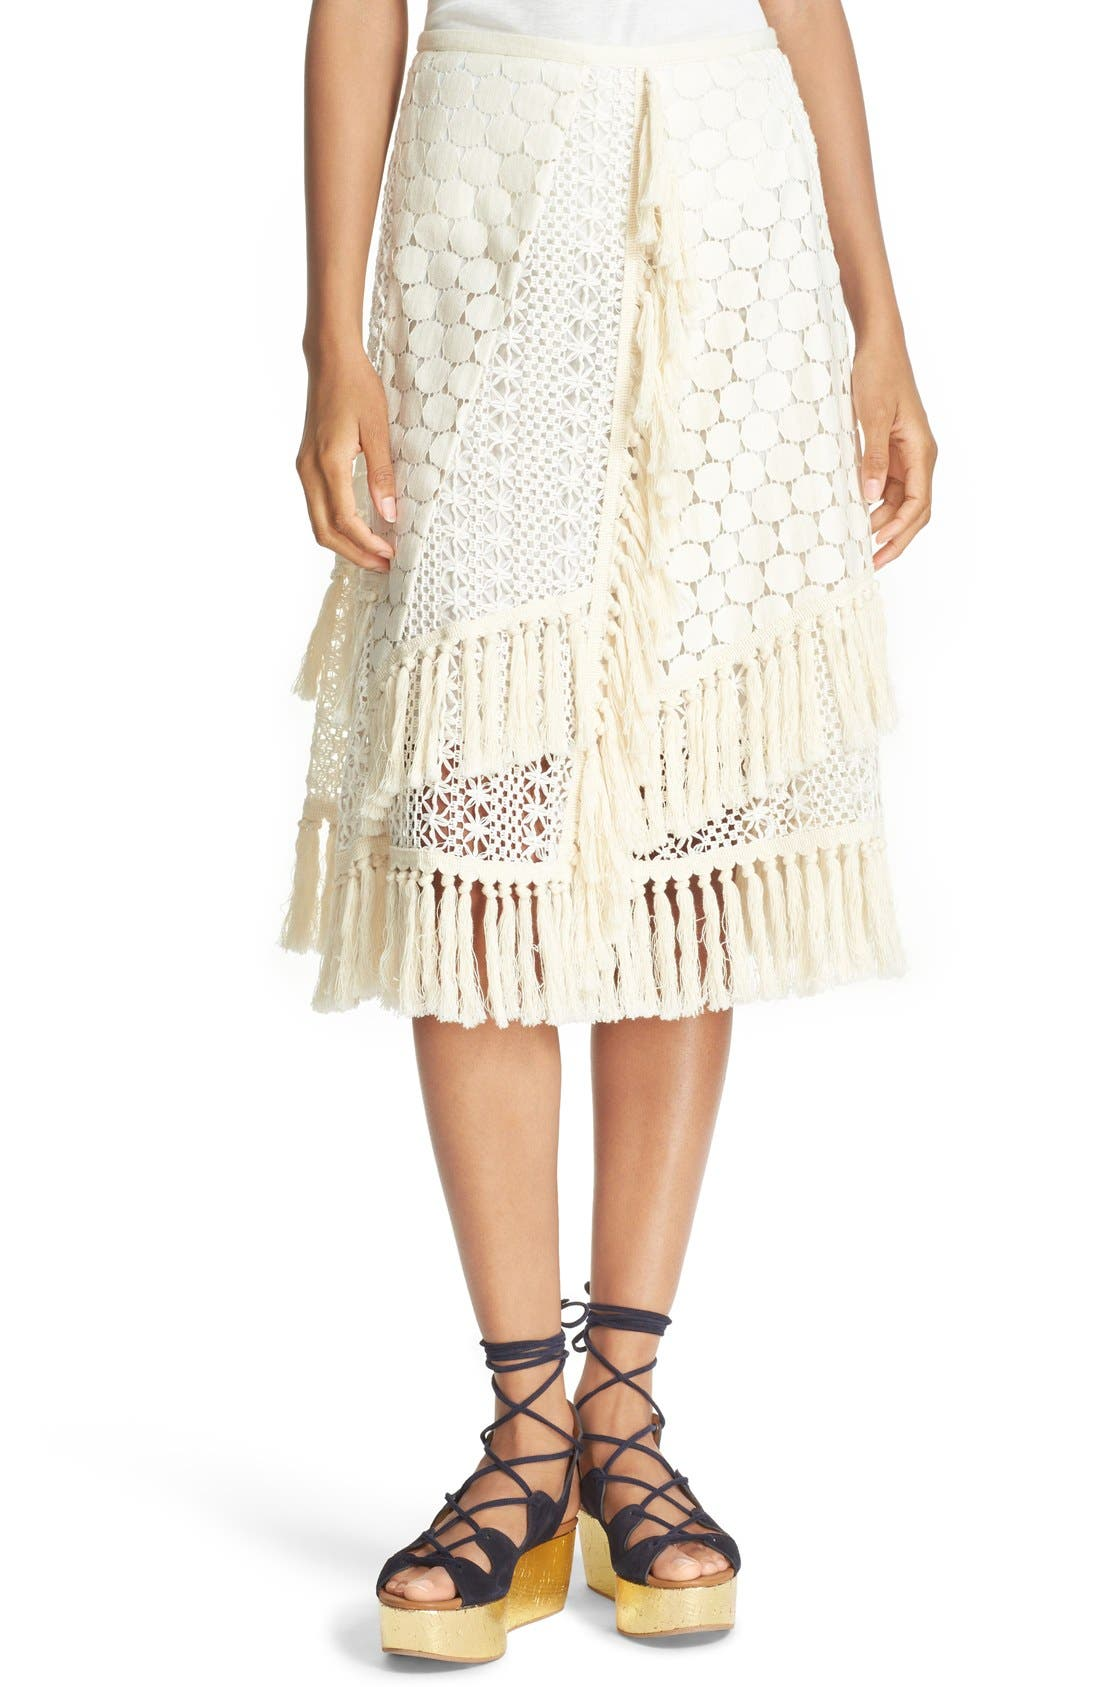 SEE BY CHLOÉ Lace & Fringe Skirt, Main, color, 900